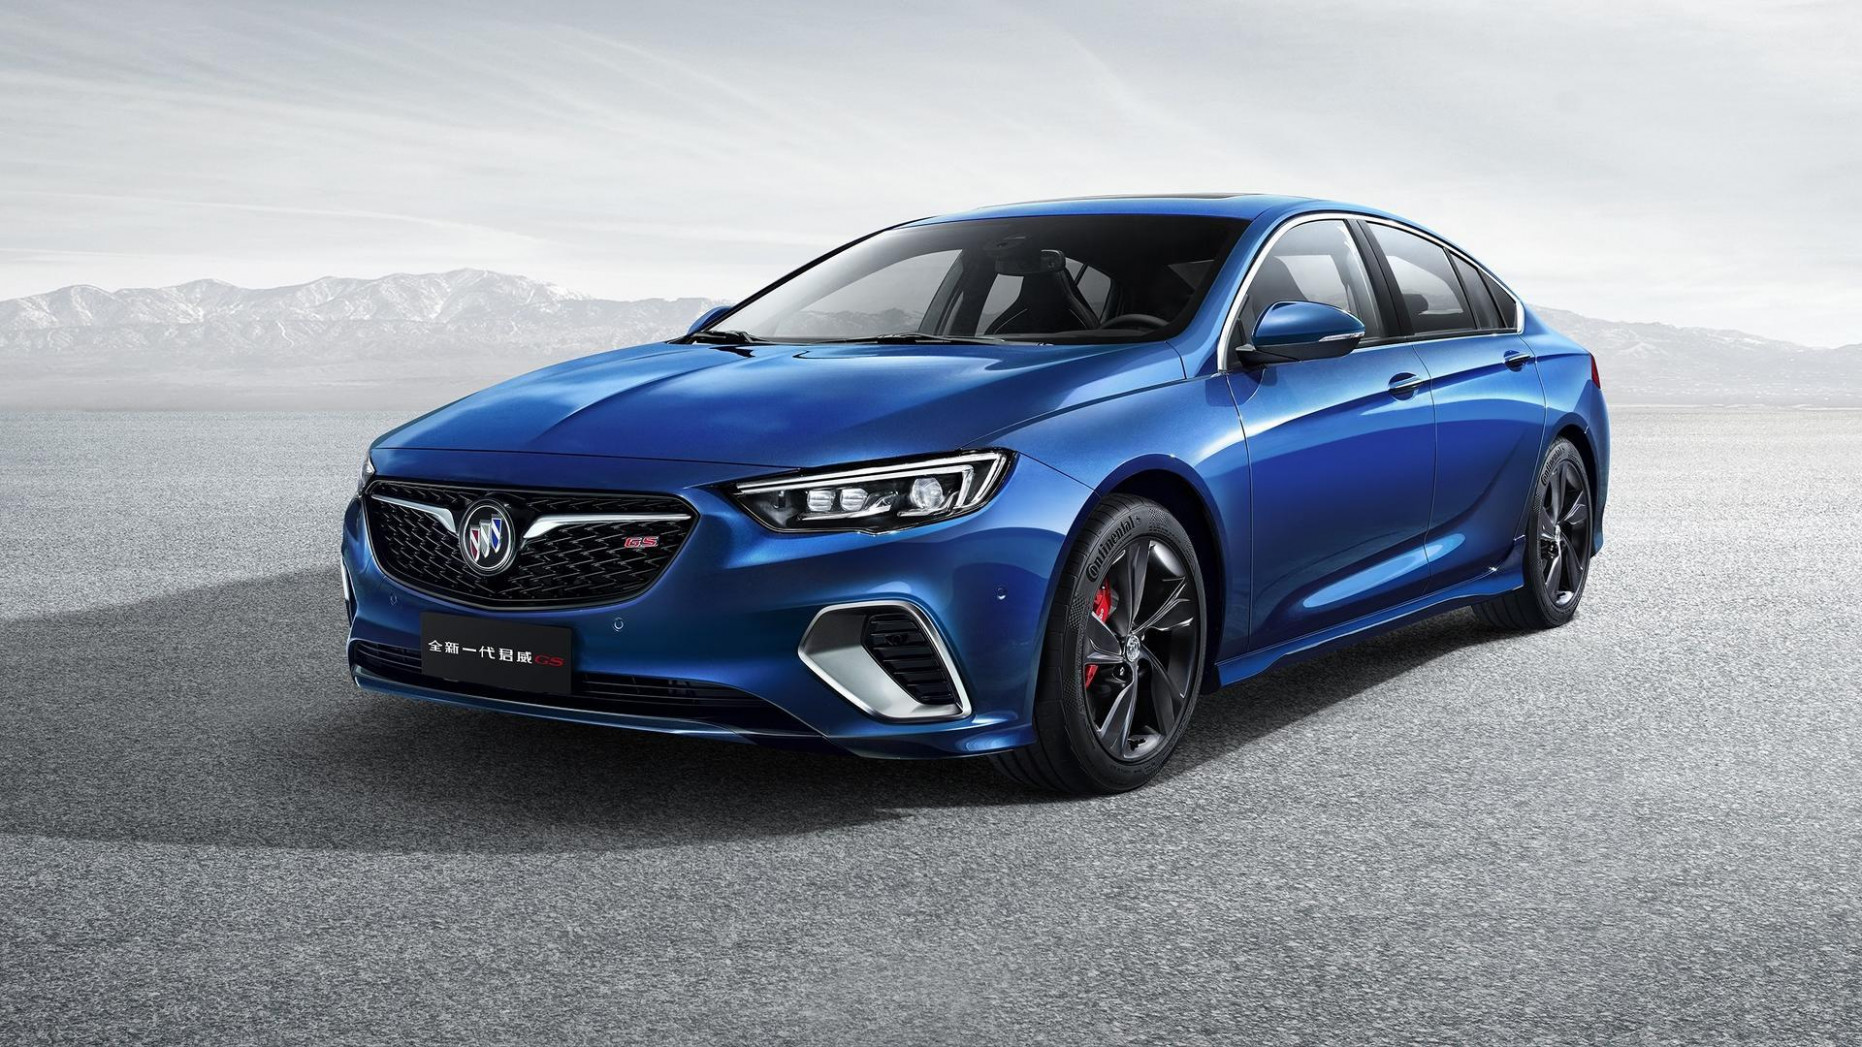 Exterior 2022 Buick Regal Gs Coupe